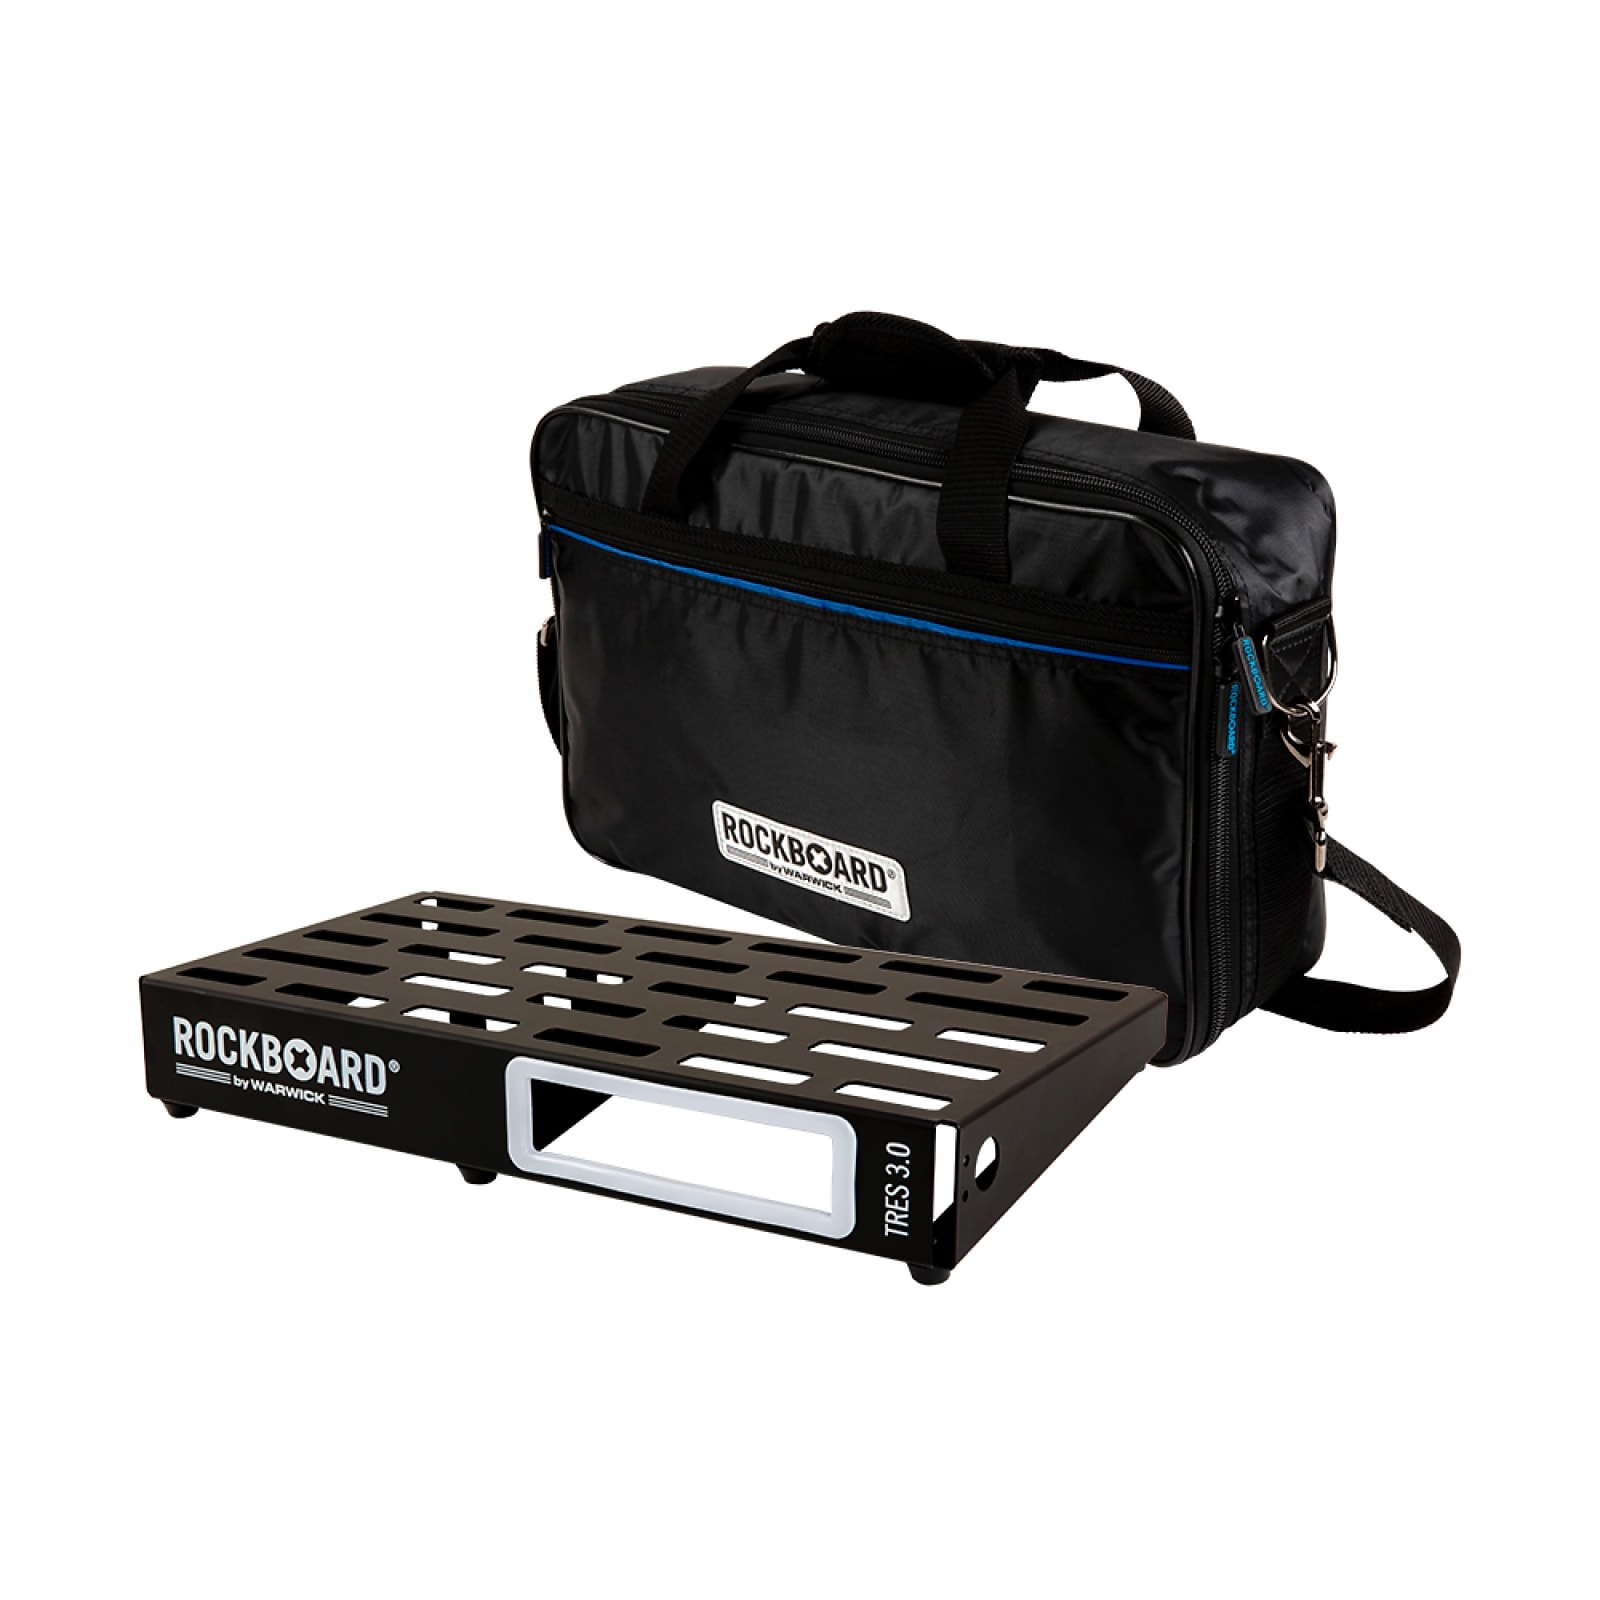 "RockBoard TRES 3.0, Pedalboard with Gig Bag, for 5-10 effects pedals (approx. 17.3"" x 9.3"")"